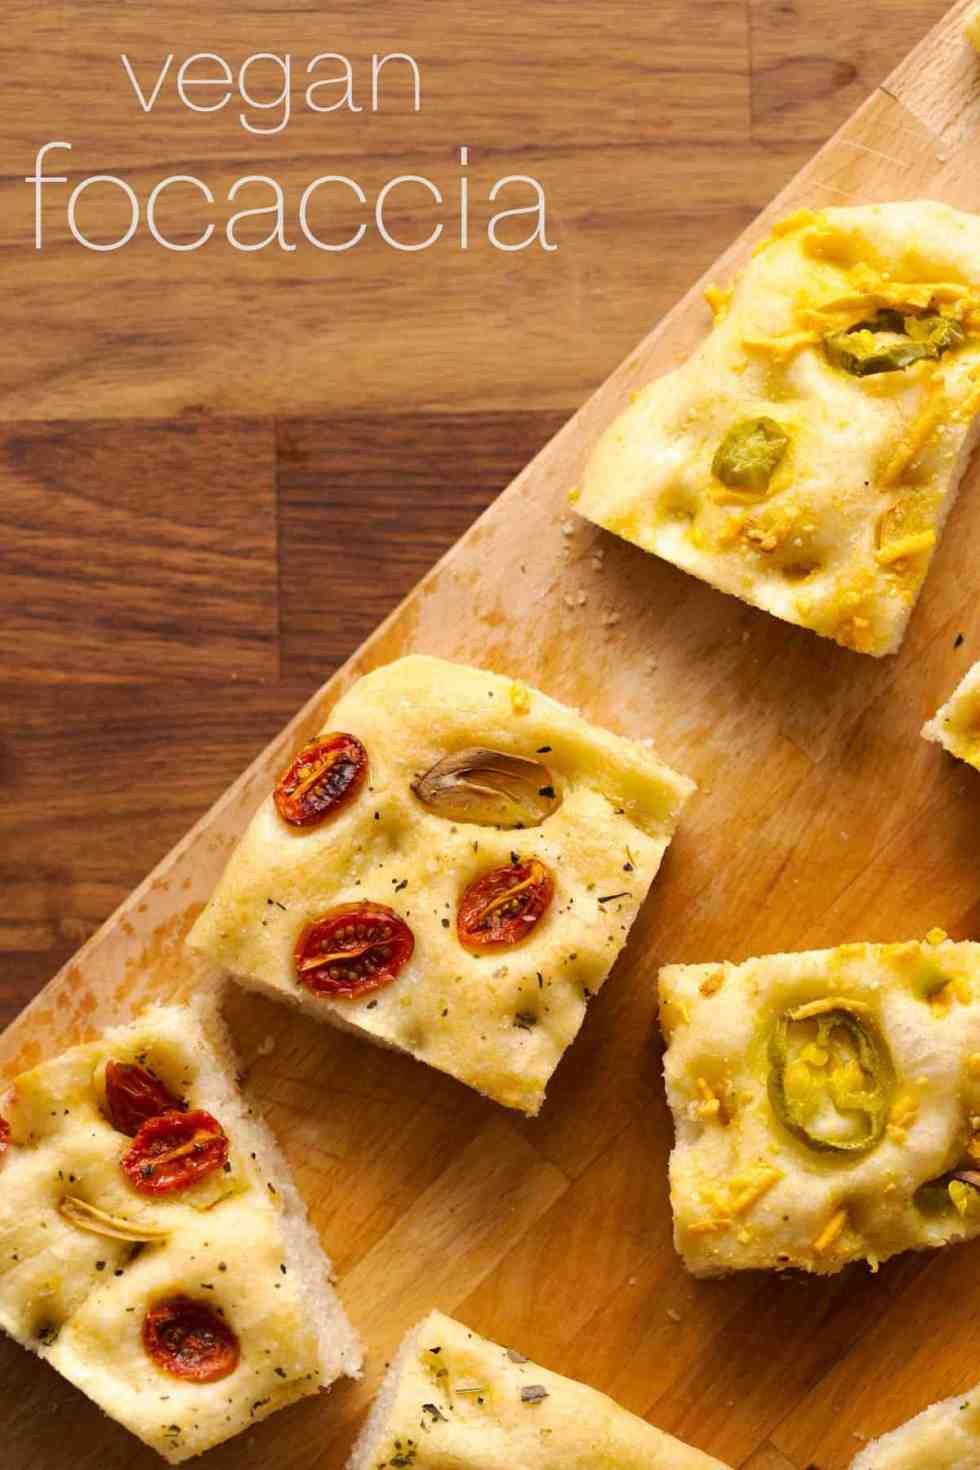 Jalapeno cheese and tomato herb focaccia dough side-by-side and ready for baking.